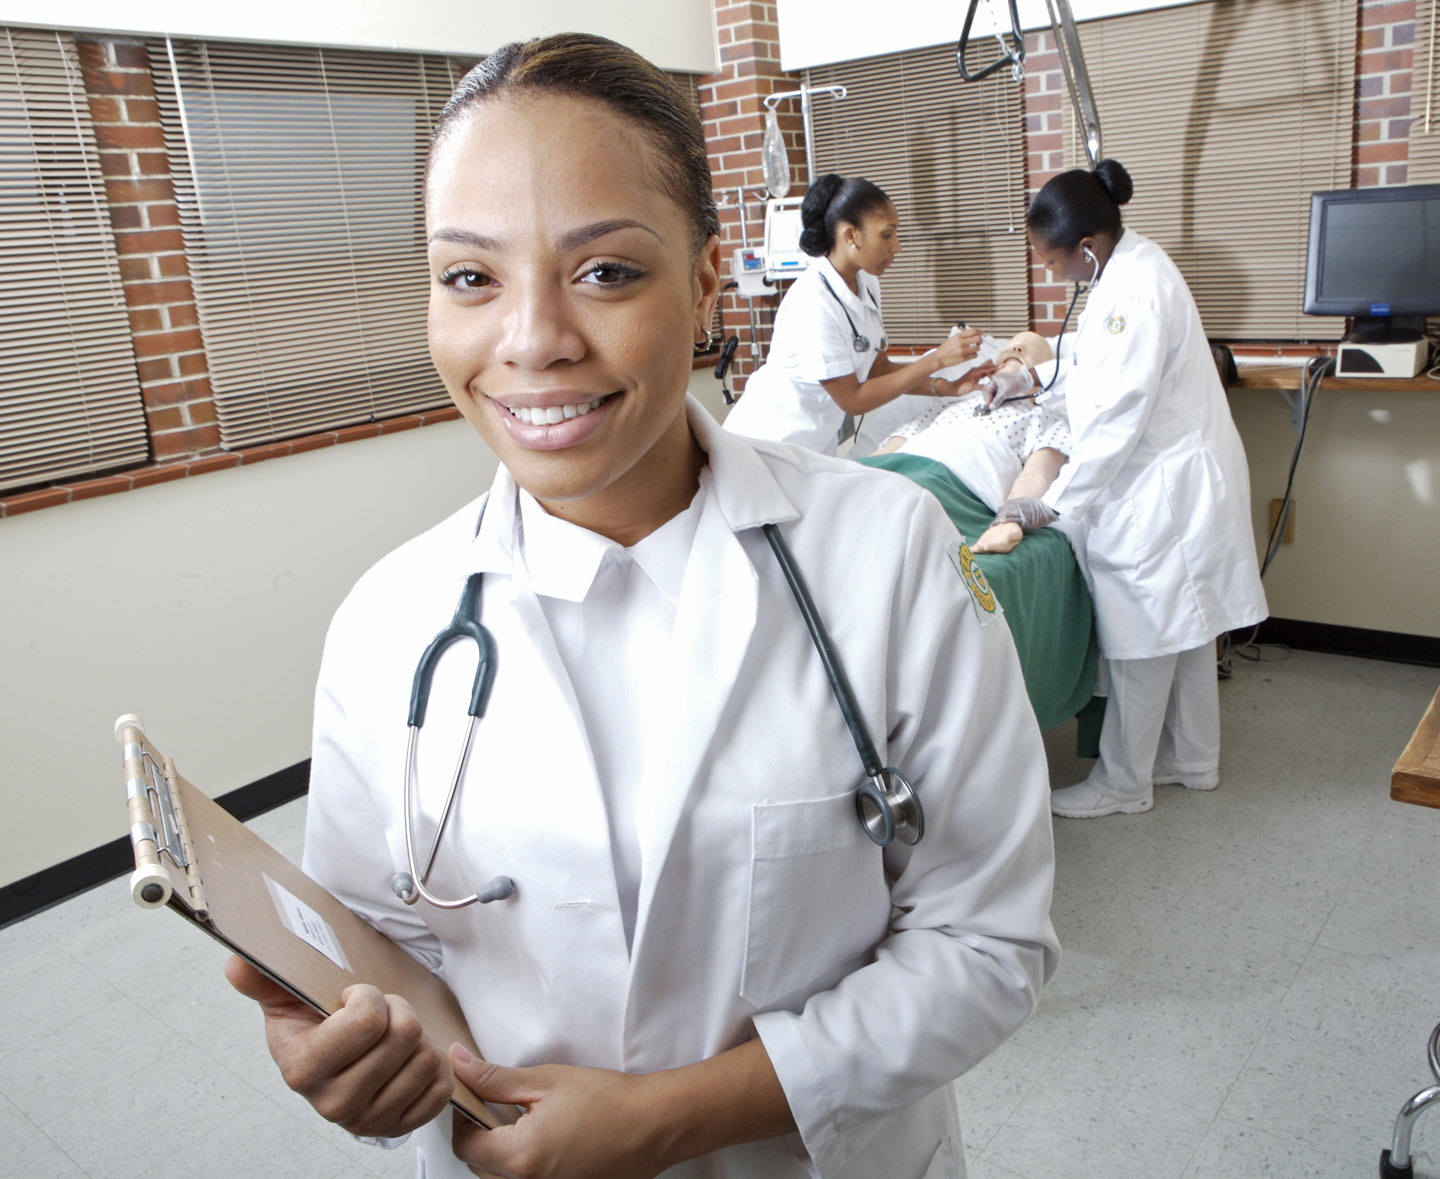 Requirements for cna school can incorporate training classes online courses cna certification requirements cna vs lvn xflitez Choice Image